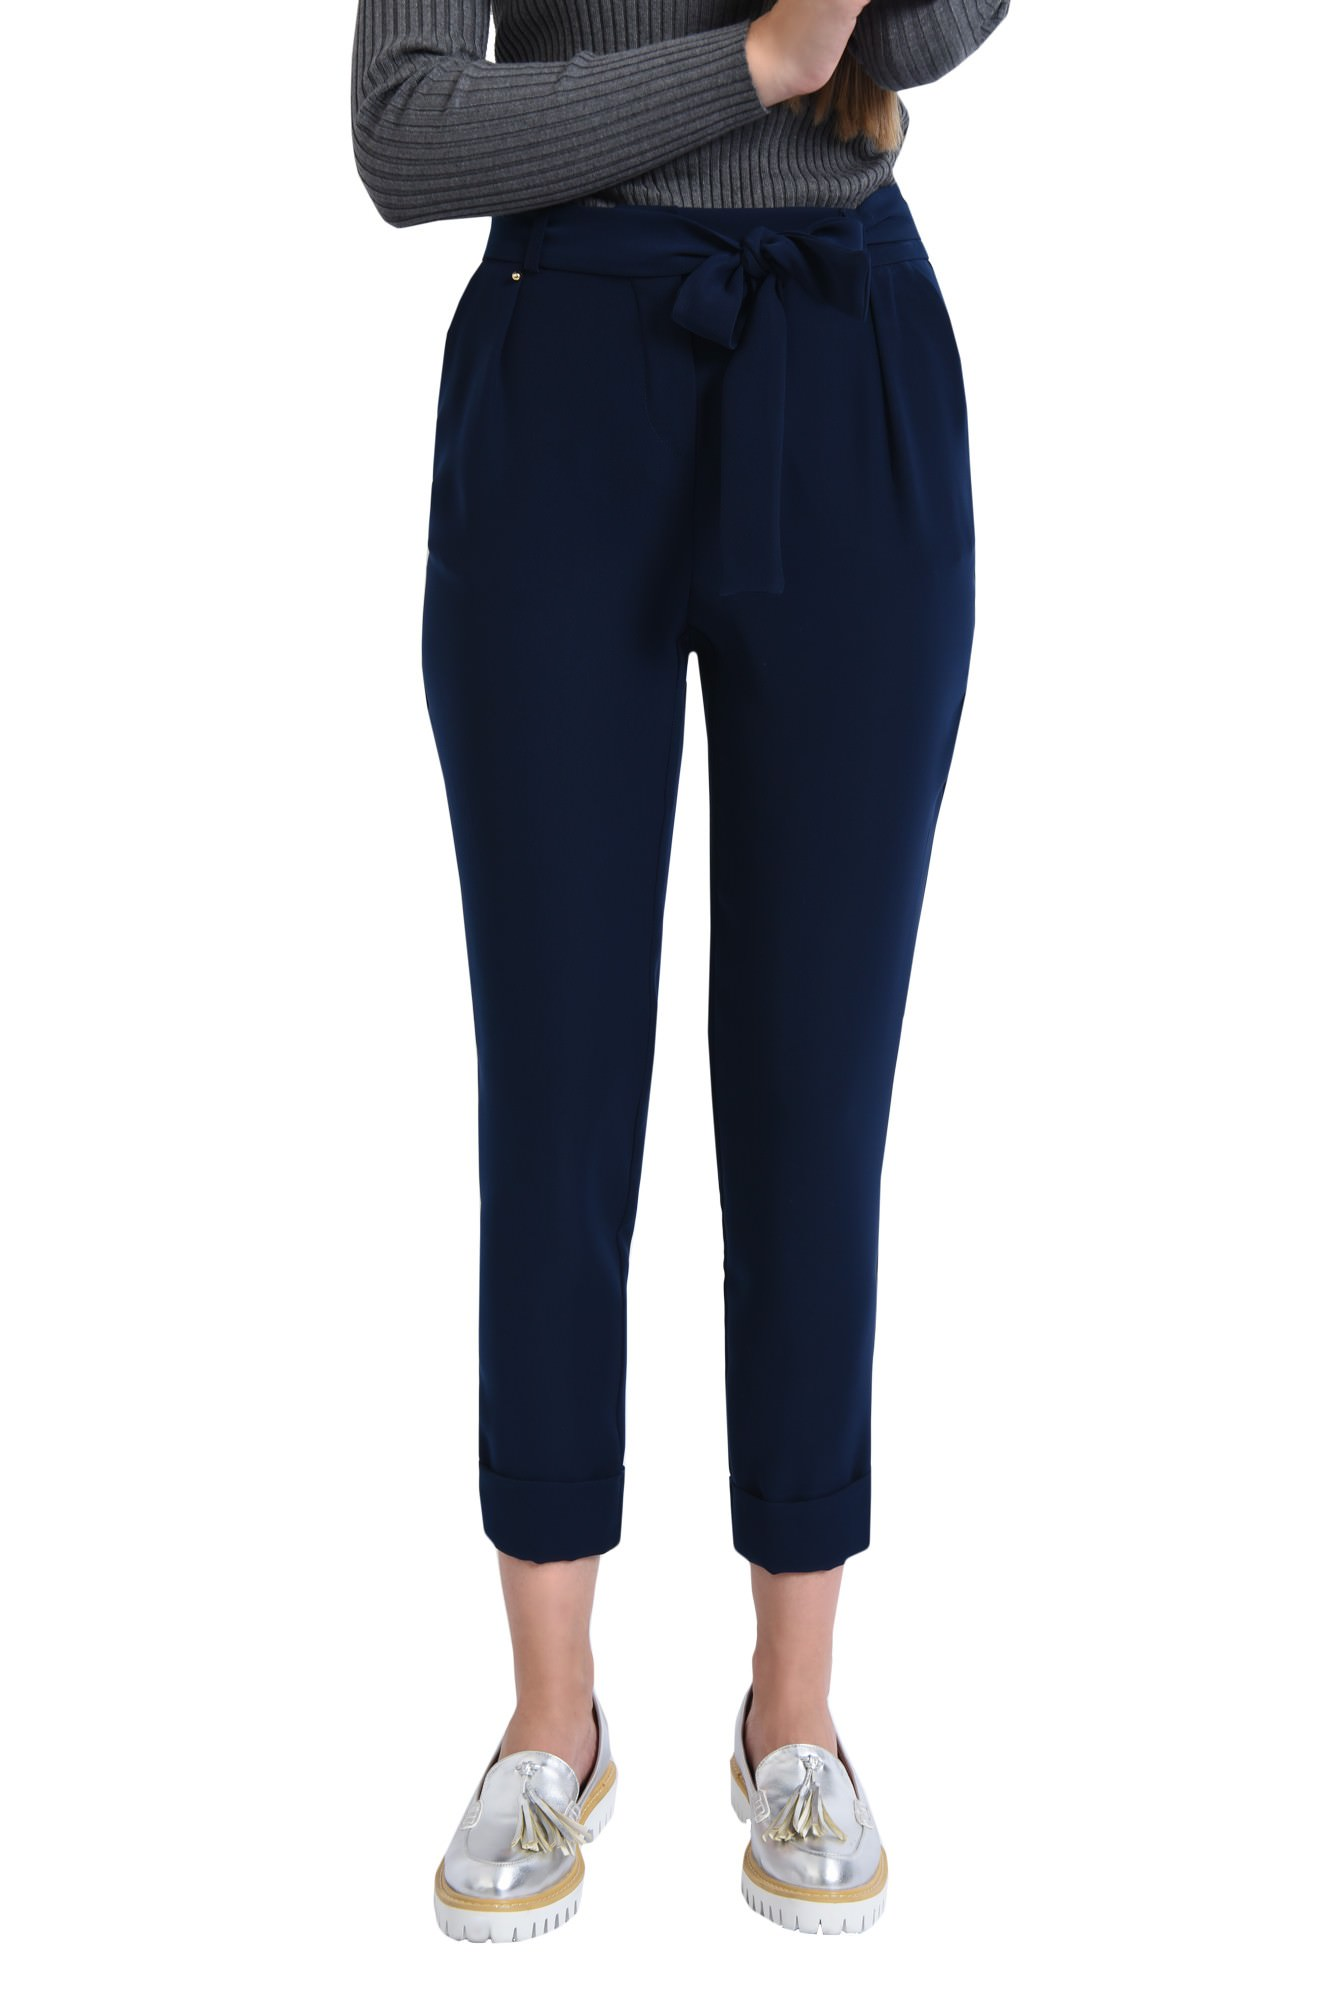 PANTALON OFFICE PT 172-BLEUMARIN